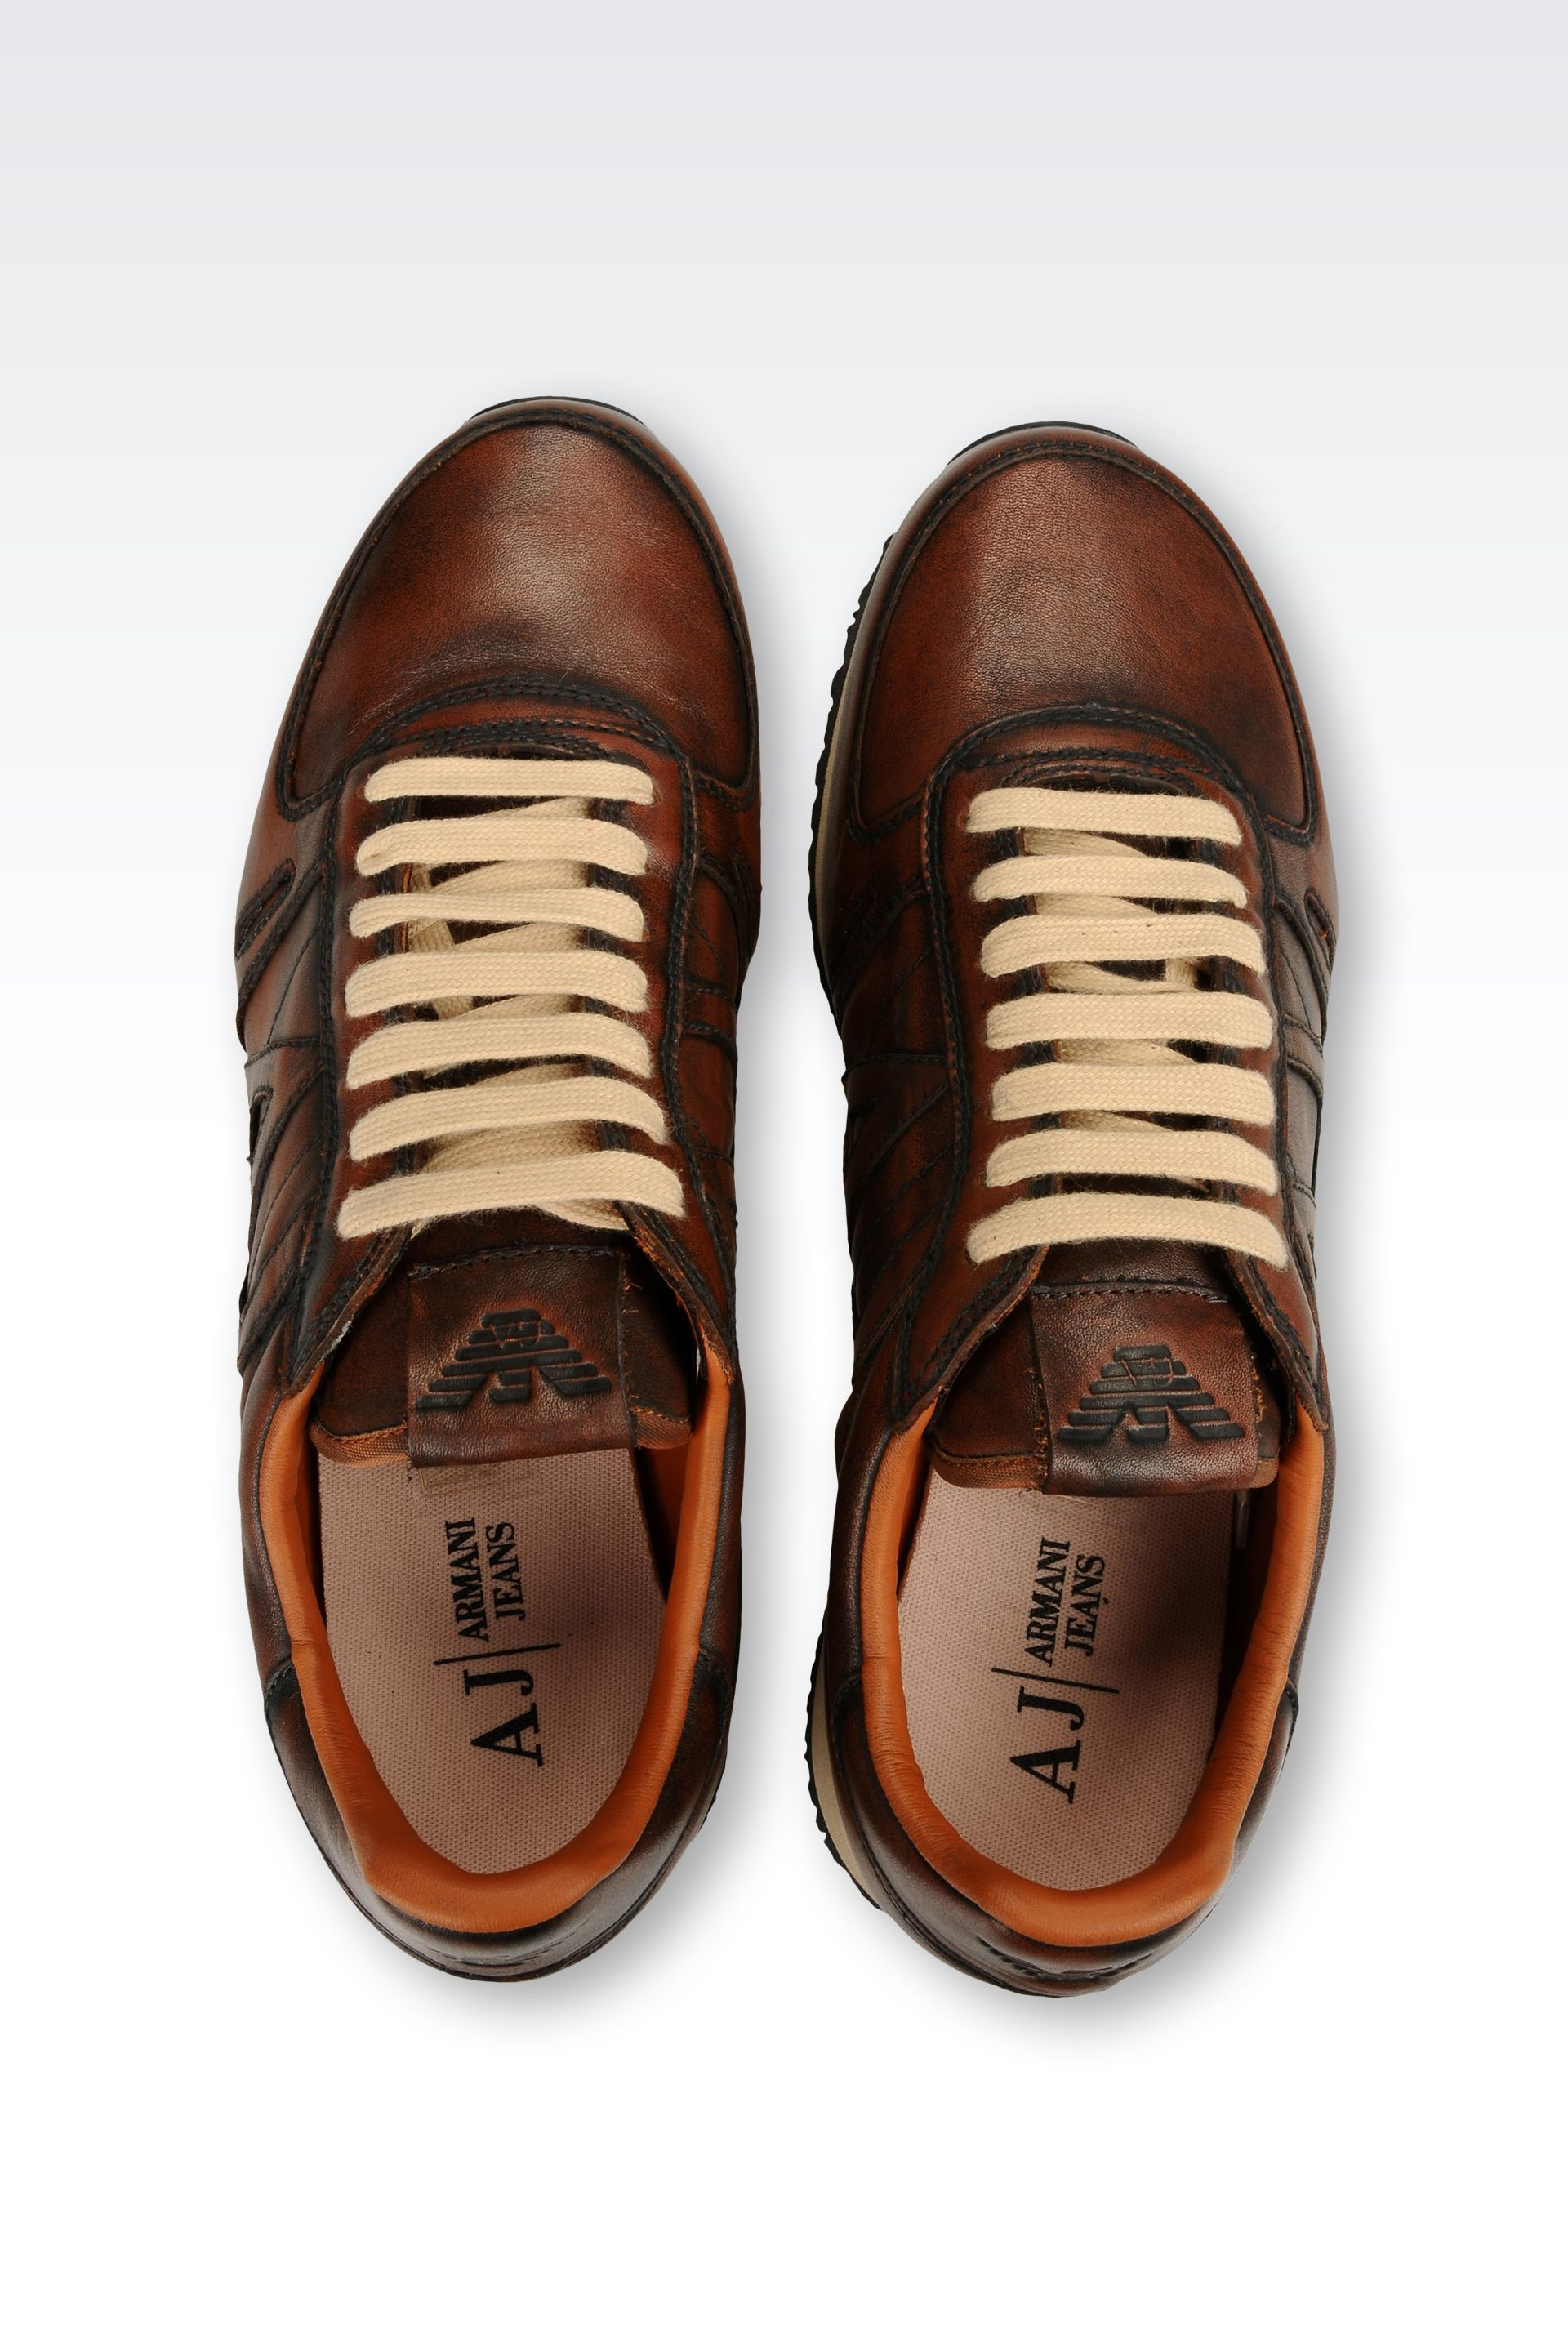 armani jeans sneaker in leather with logo in brown for men cocoa lyst. Black Bedroom Furniture Sets. Home Design Ideas